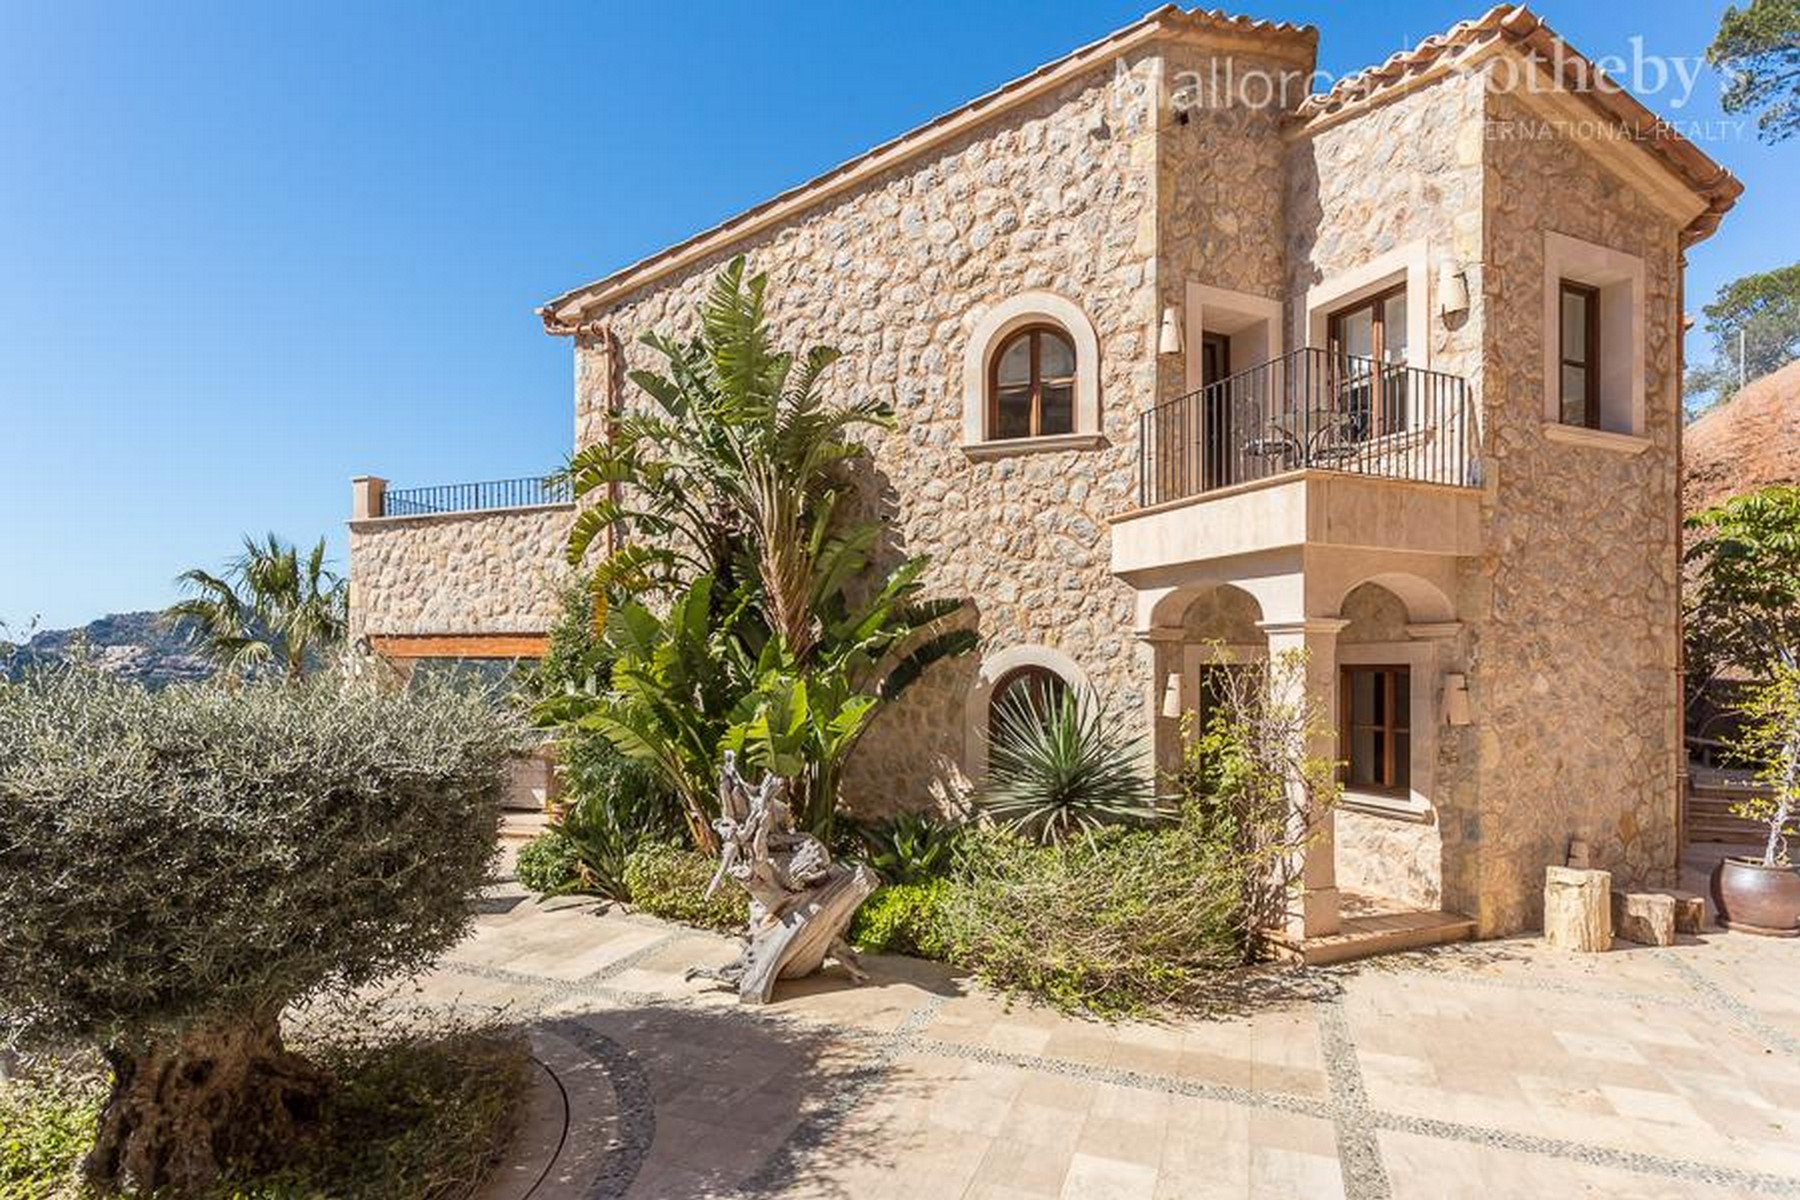 Multi-Family Home for Sale at Spacious Mallorquin Style Villa in Port Andratx Port Andratx, Mallorca 07157 Spain